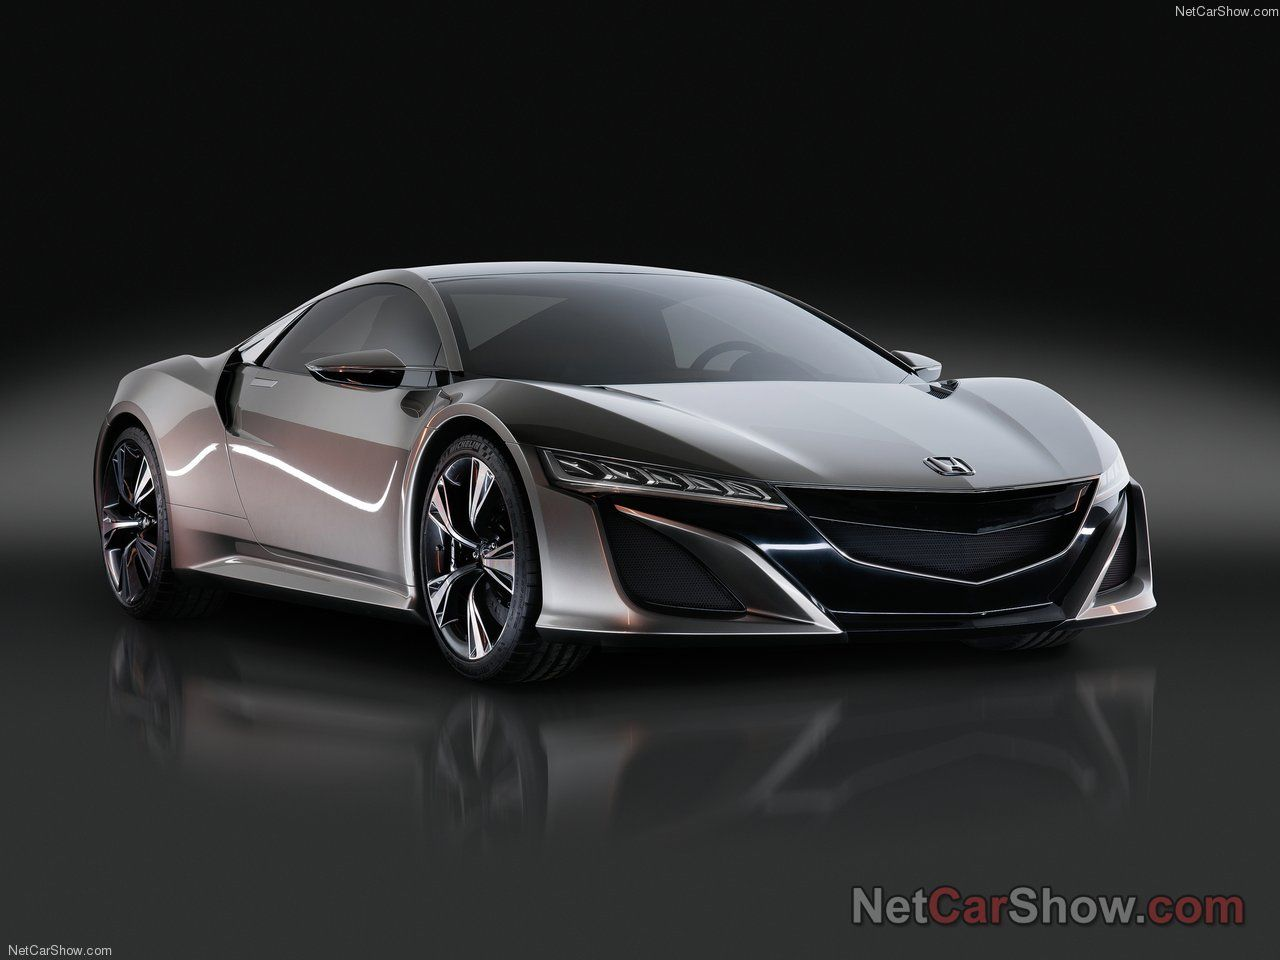 The Very Tasty New Honda Nsx In Concept Form Nsx Honda Sports Car Cool Sports Cars